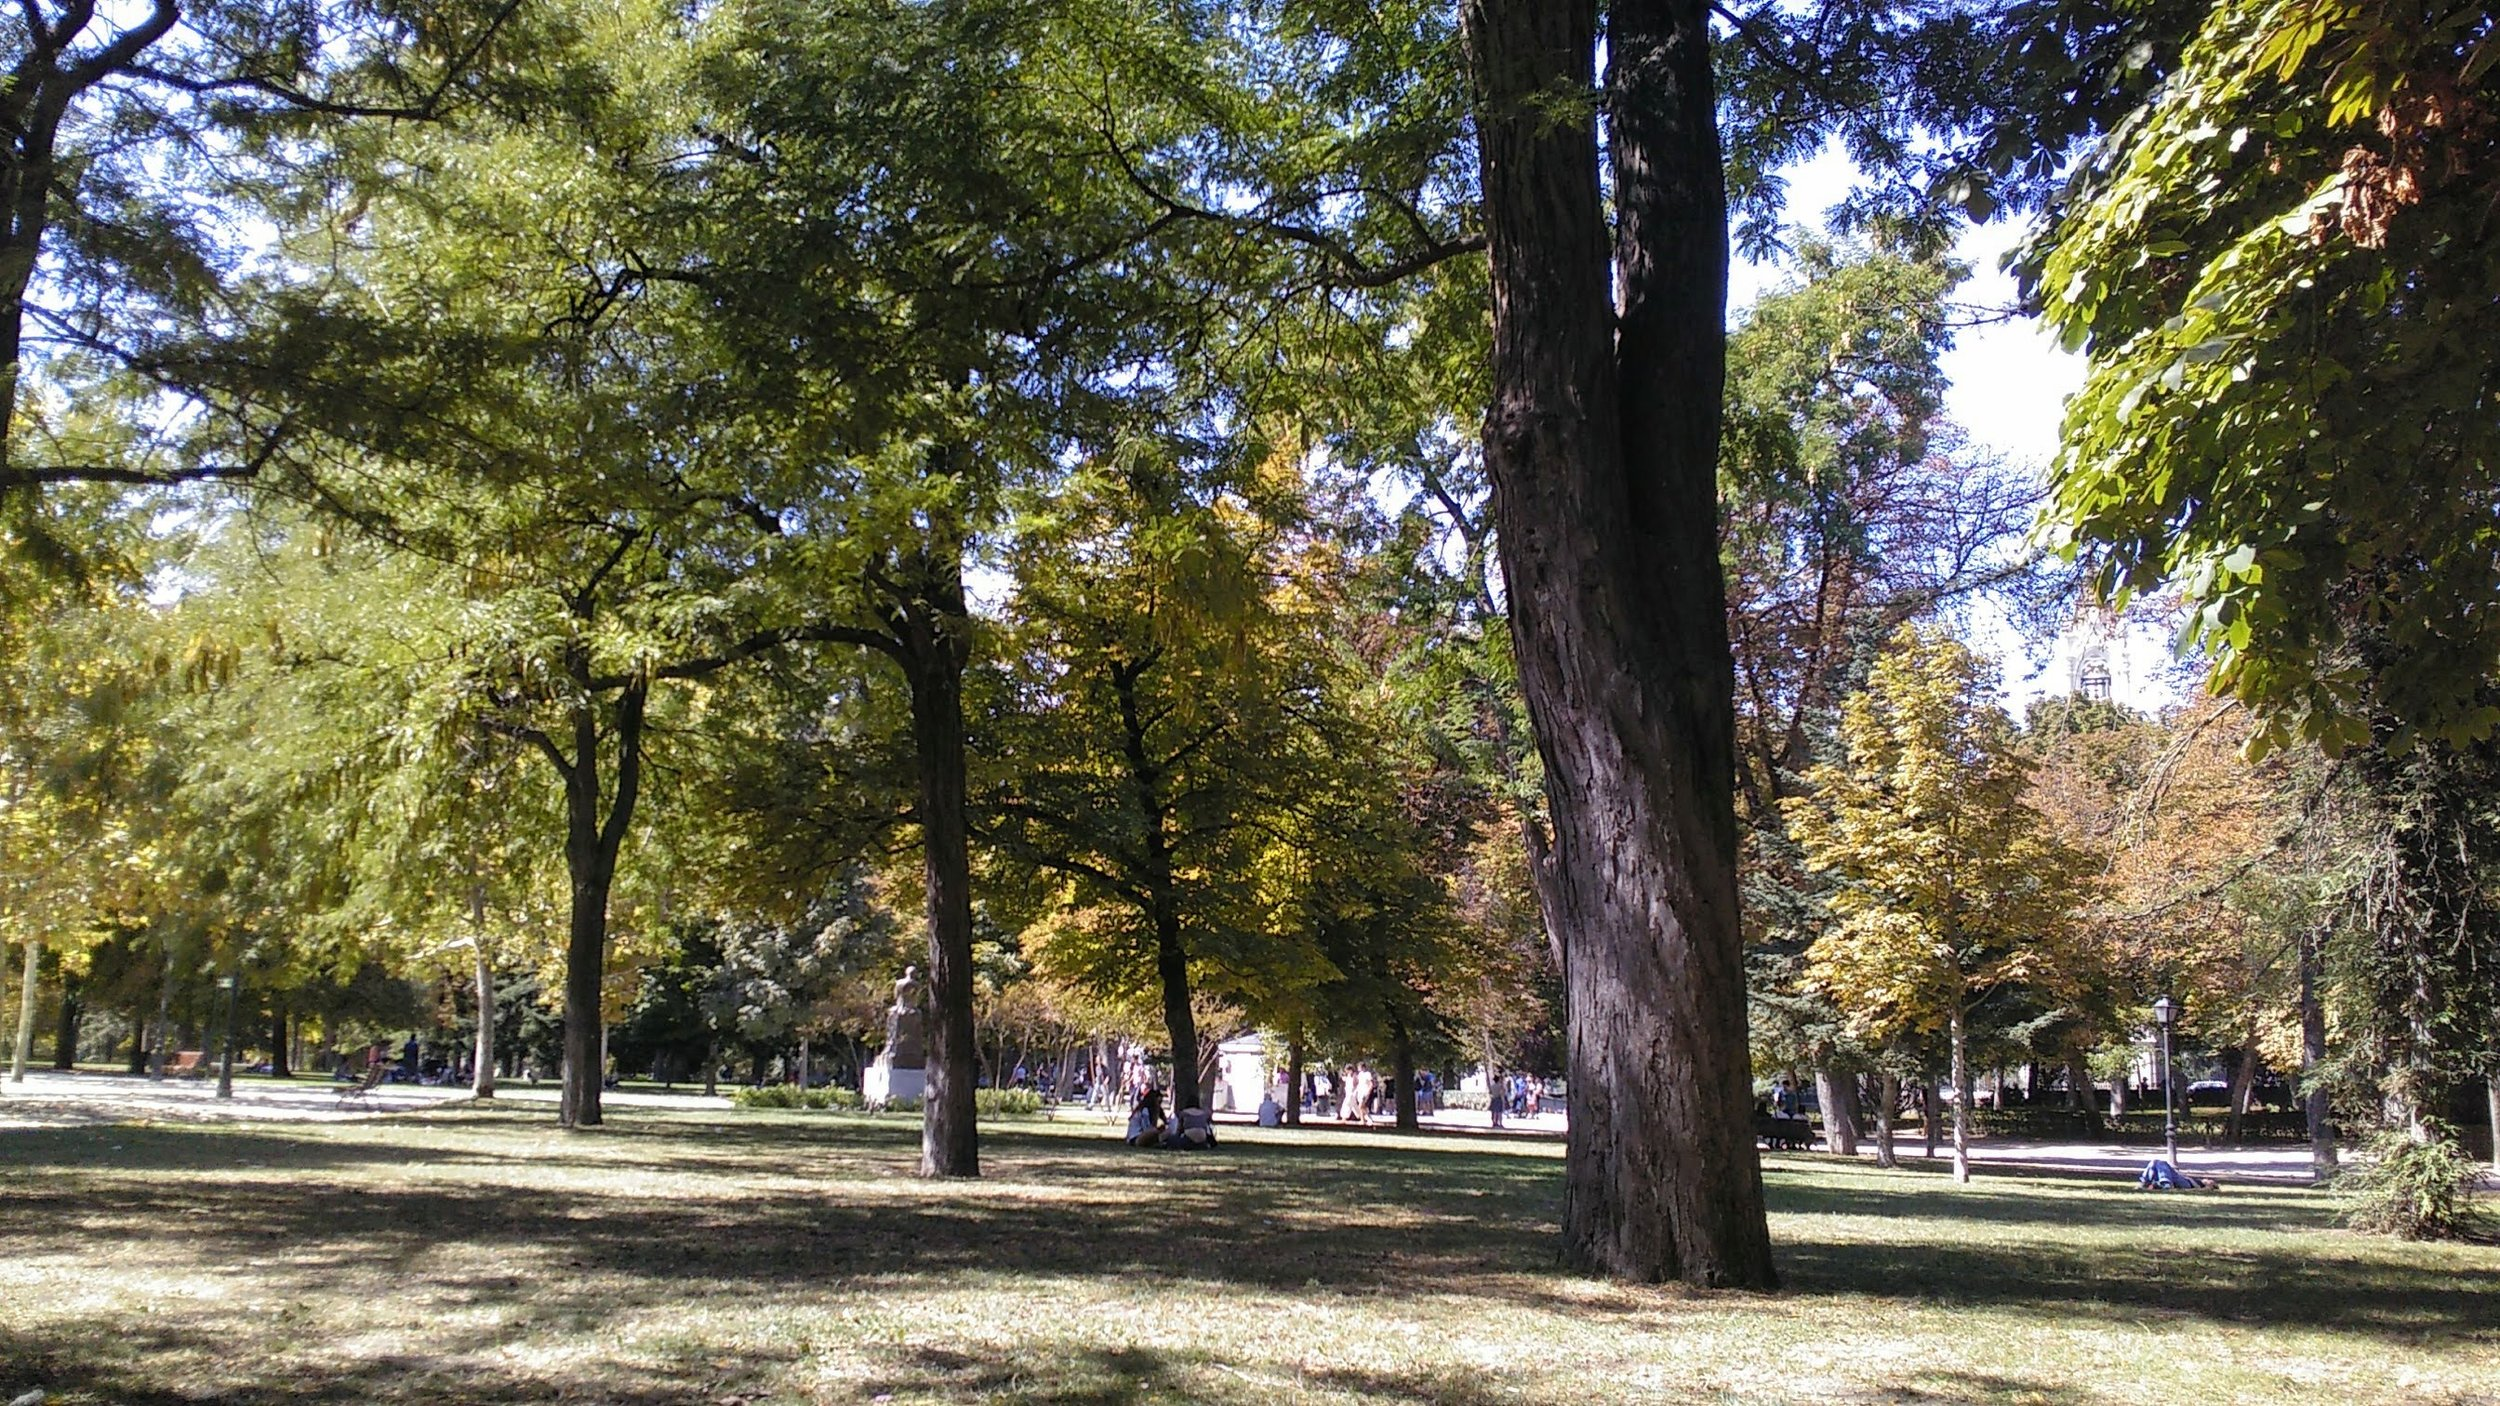 Shady area in El Retiro park where we set up our group picnic!